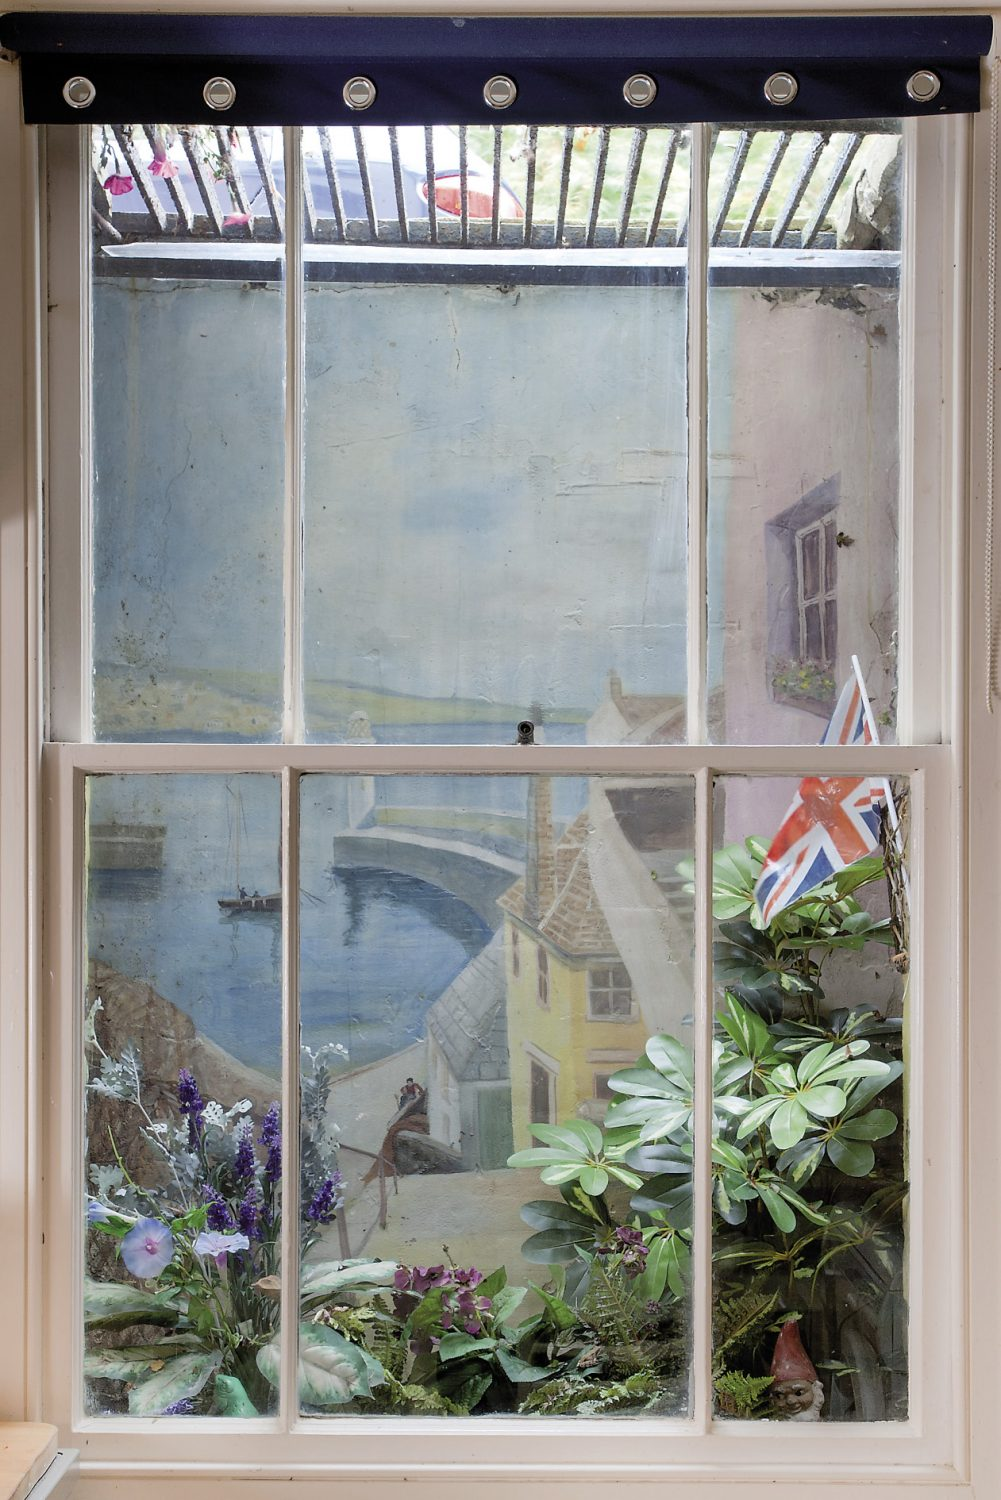 The kitchen, being at the front of the house is situated below ground with a lightwell rather than a view. To compensate for this, Alastair planted ferns in the base and his friend Linda King painted a mural on the wall behind